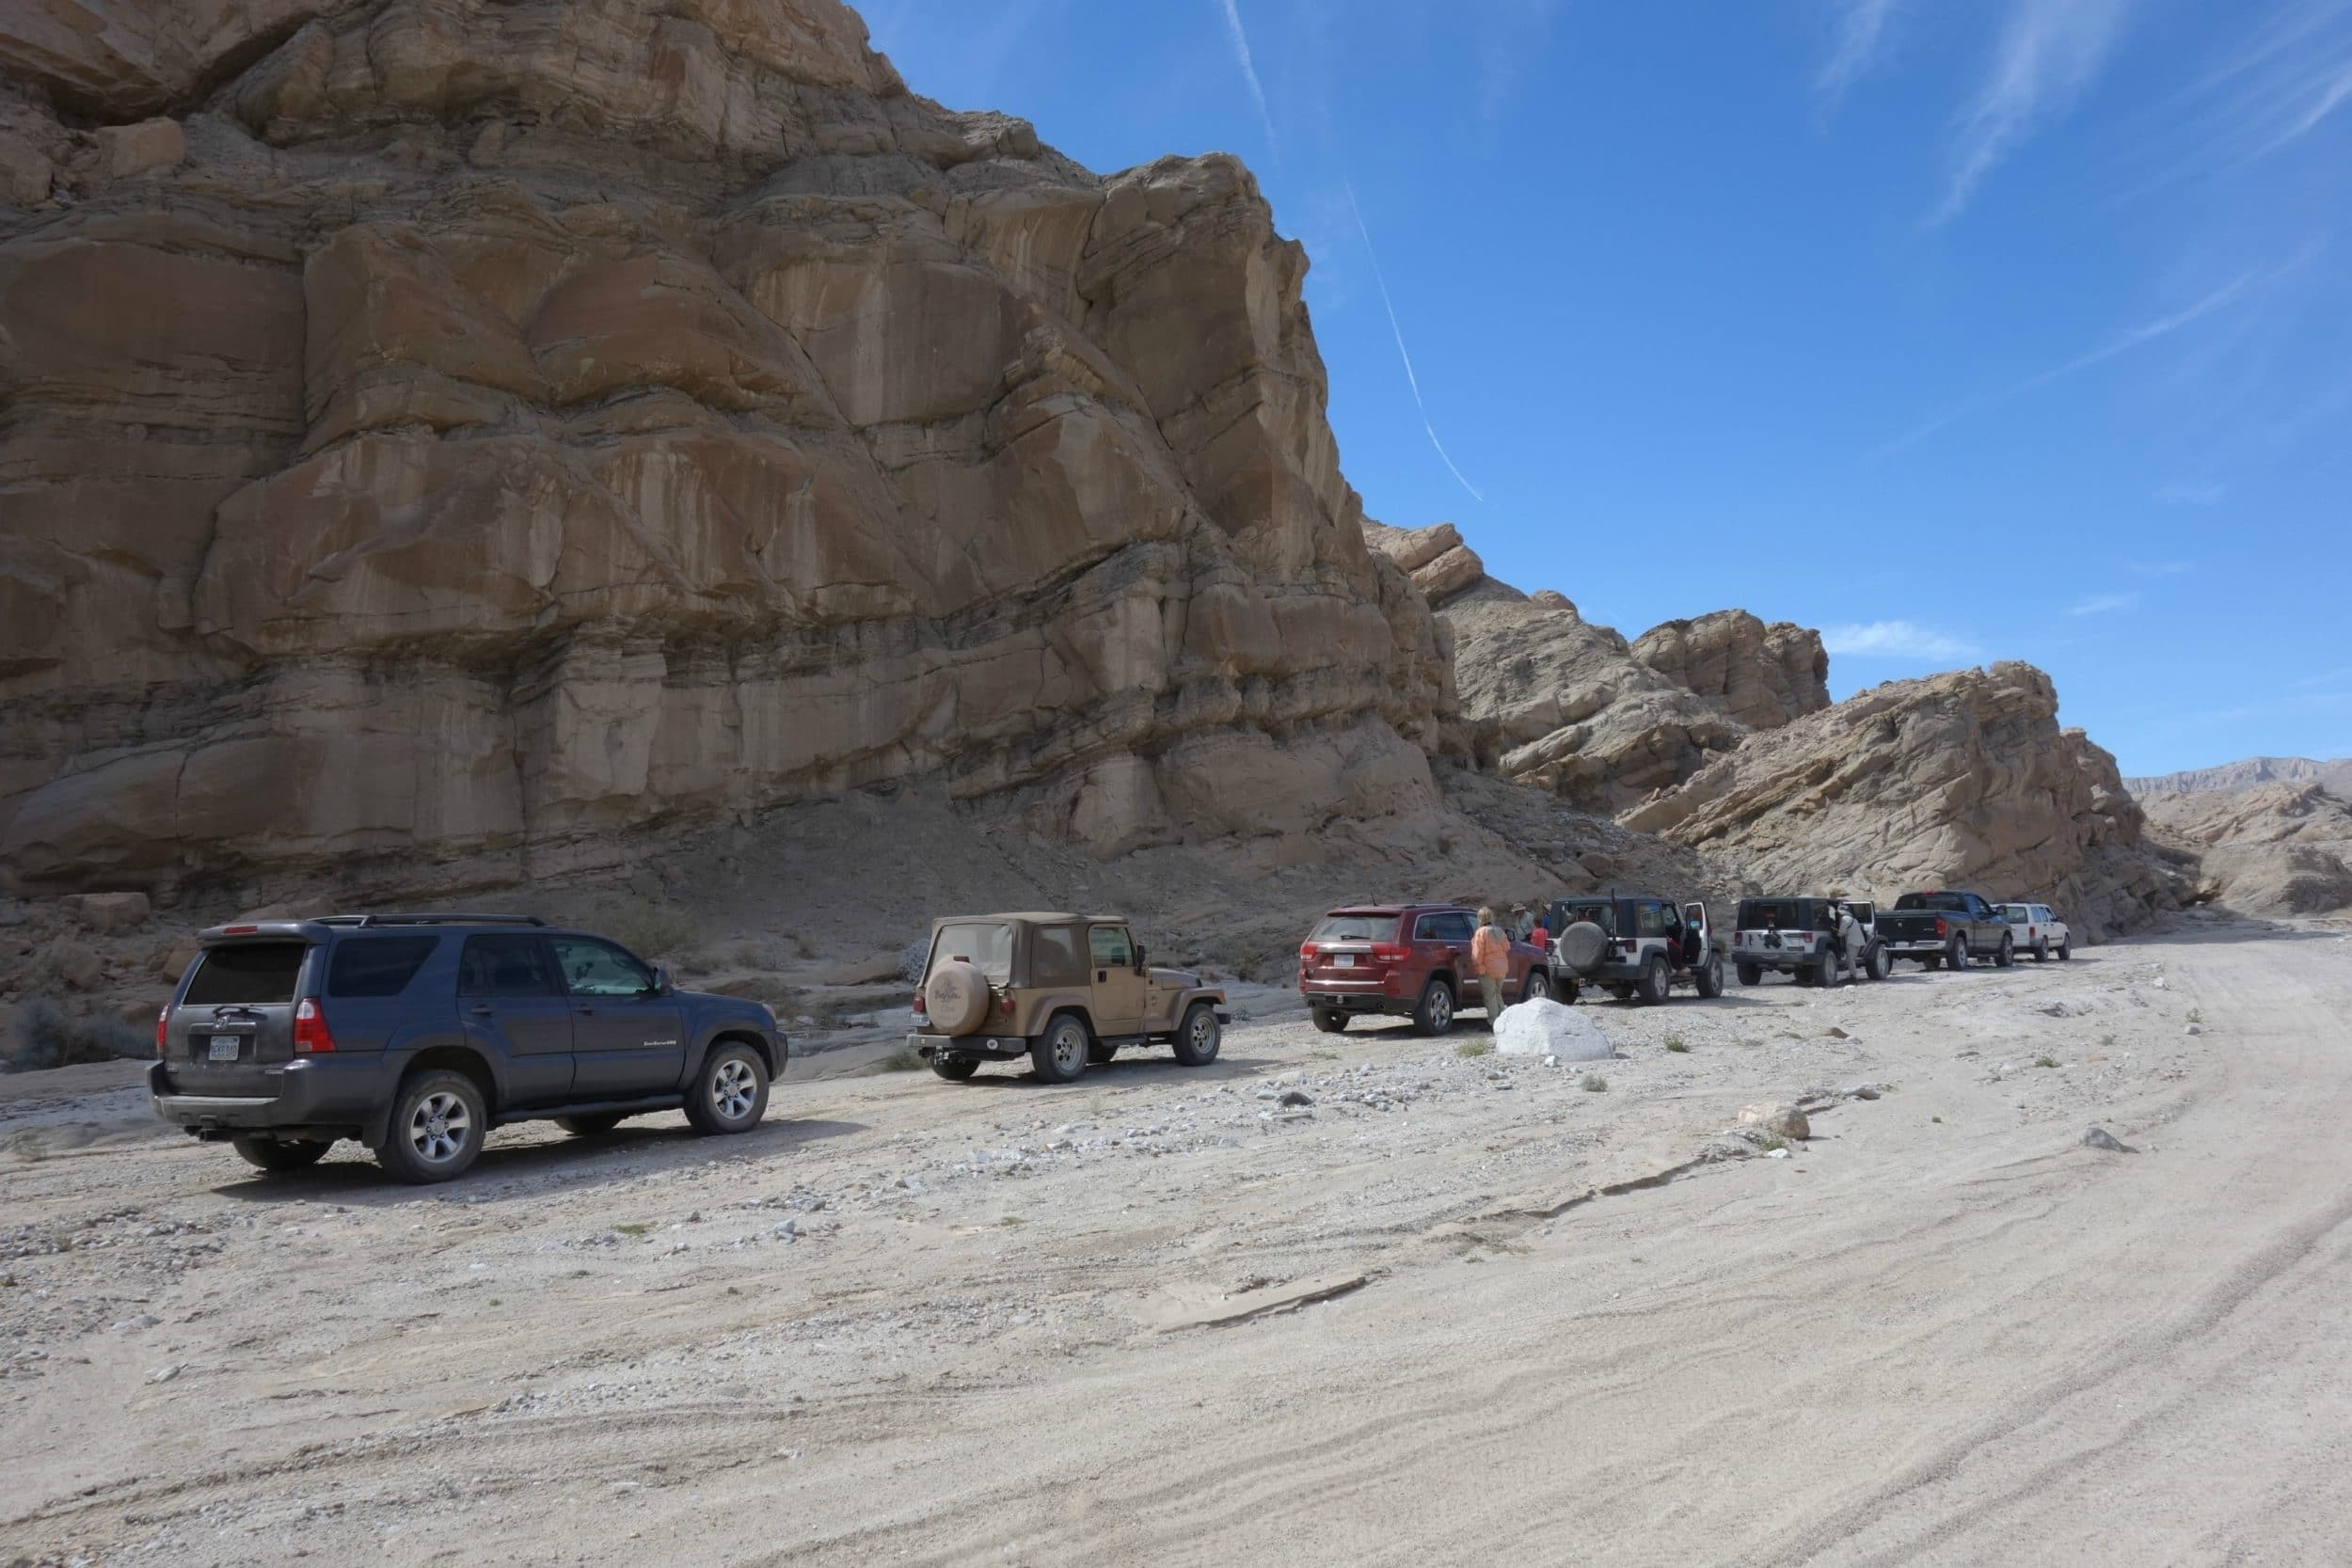 A line up of cars at Fish Creek in Anza-Borrego Desert State Park.